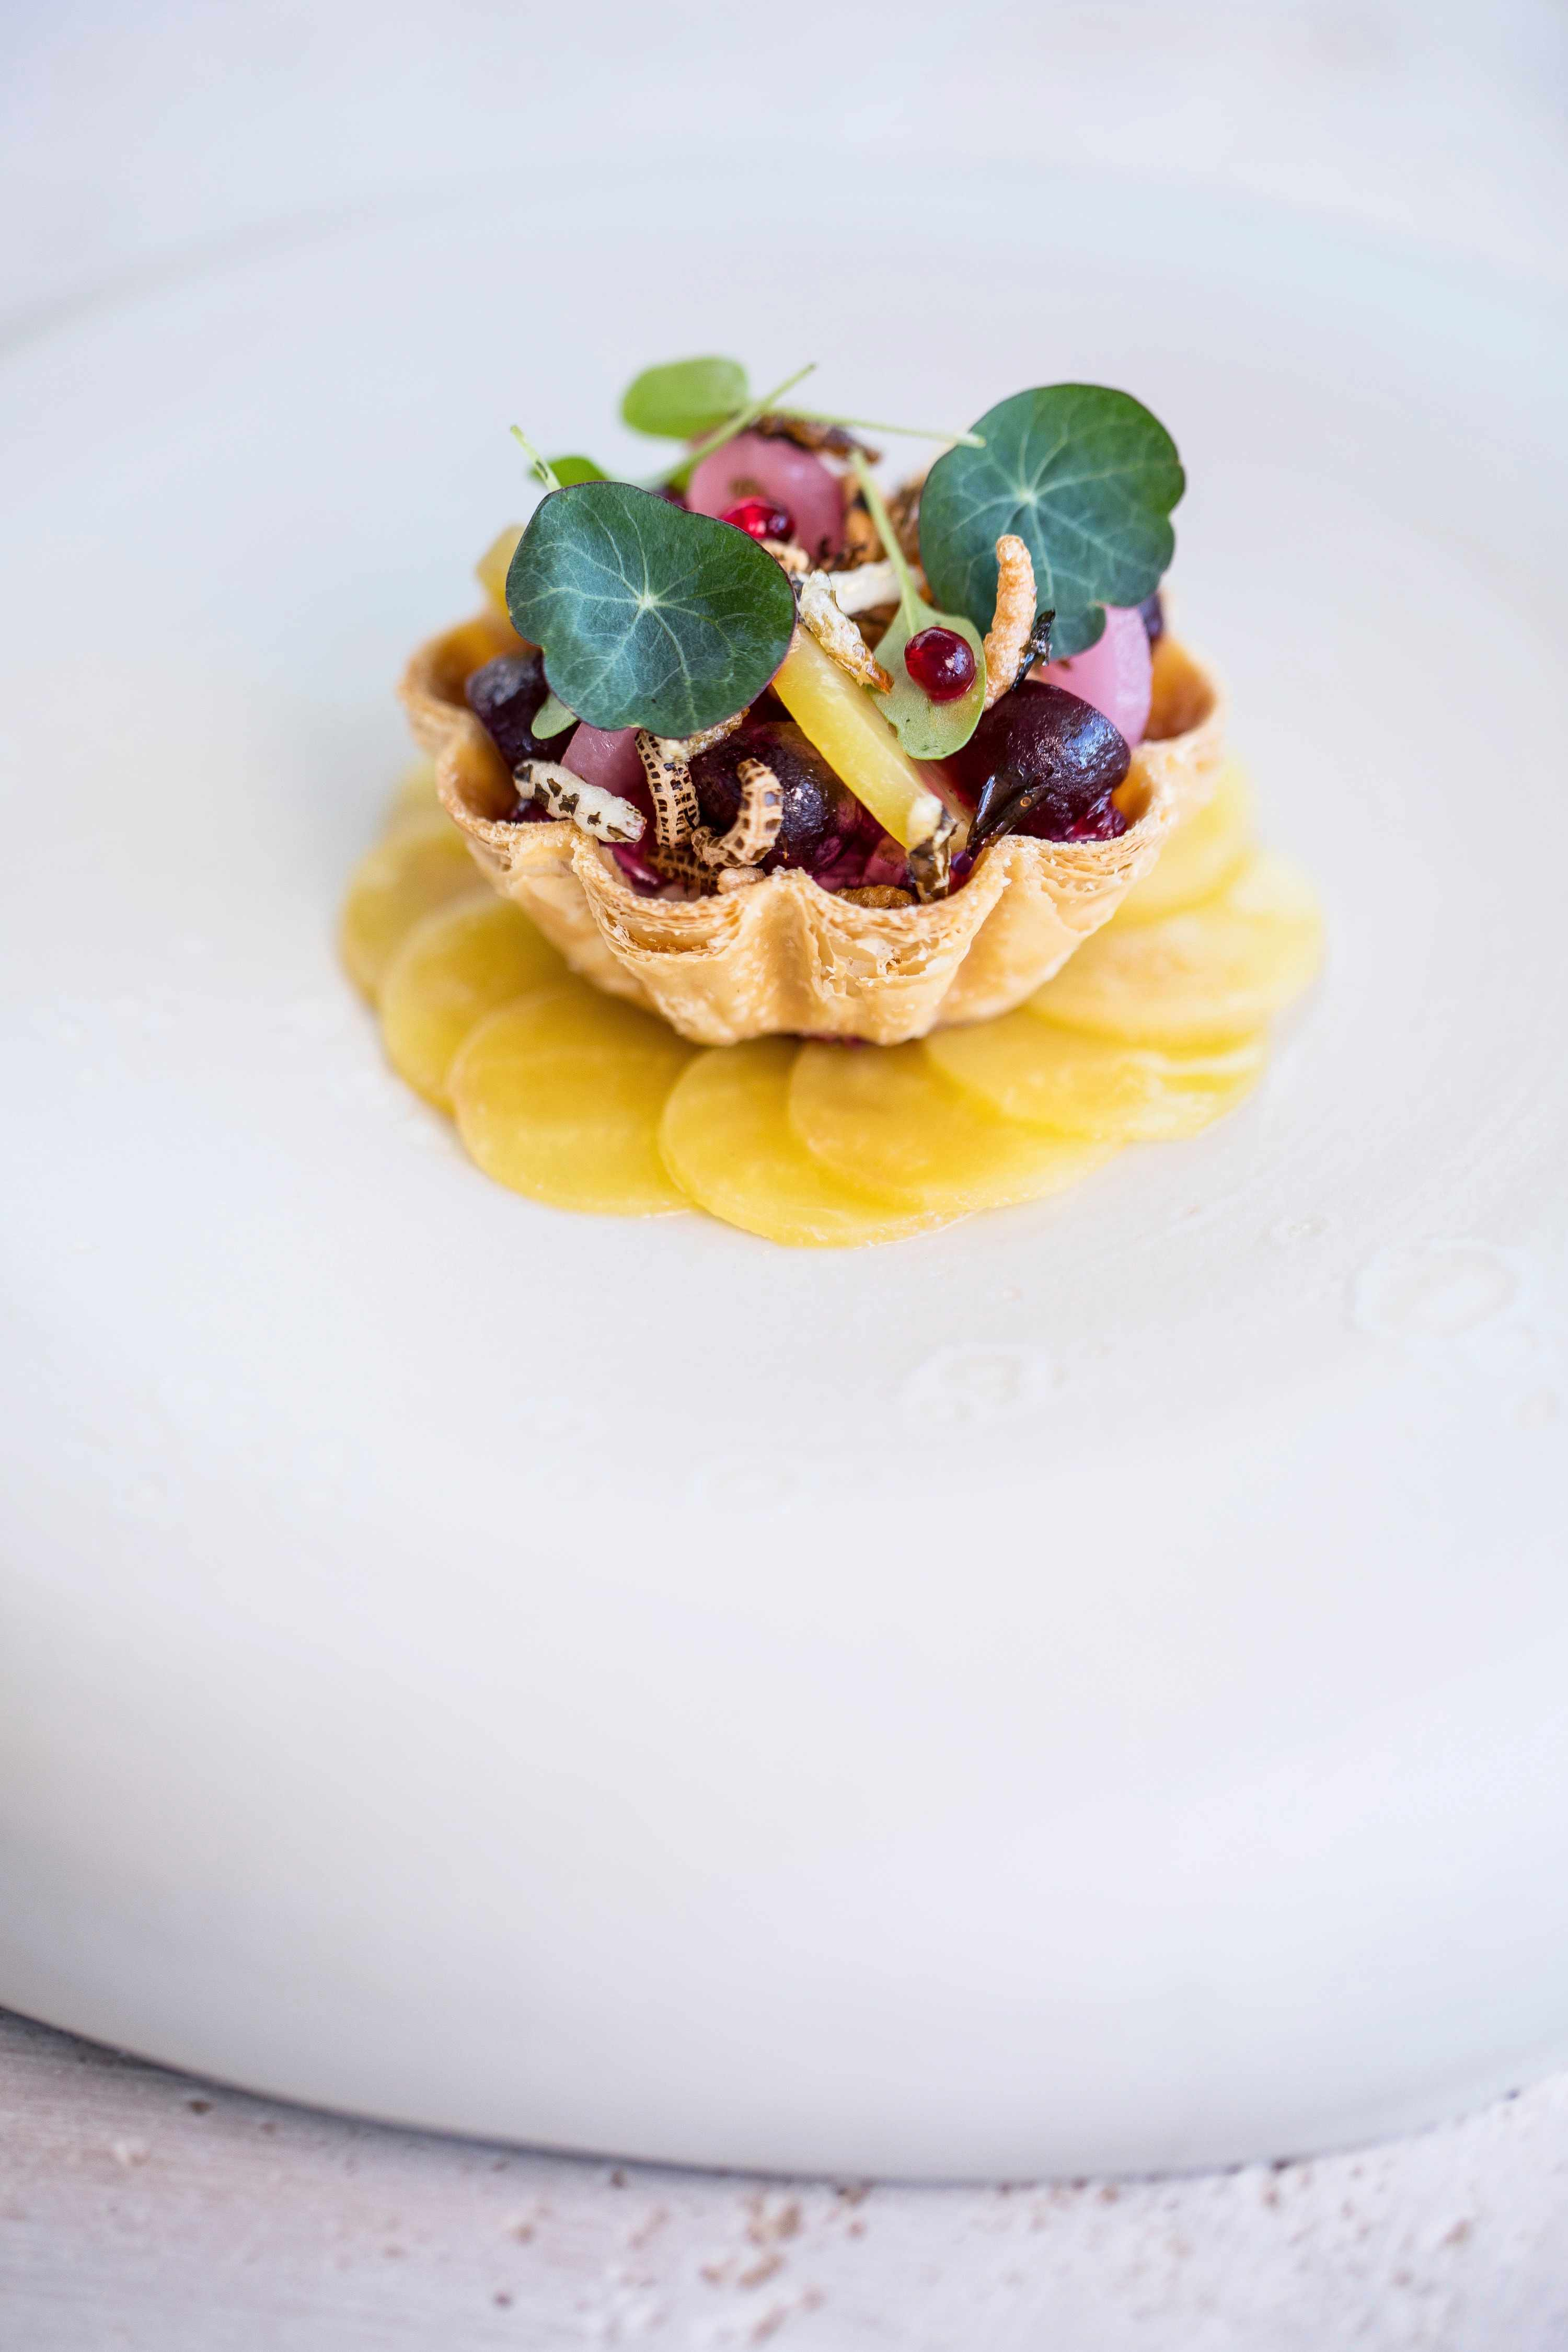 A delicate pastry tart with pretty crimped sides sits on a bed of thinly sliced yellow fruit